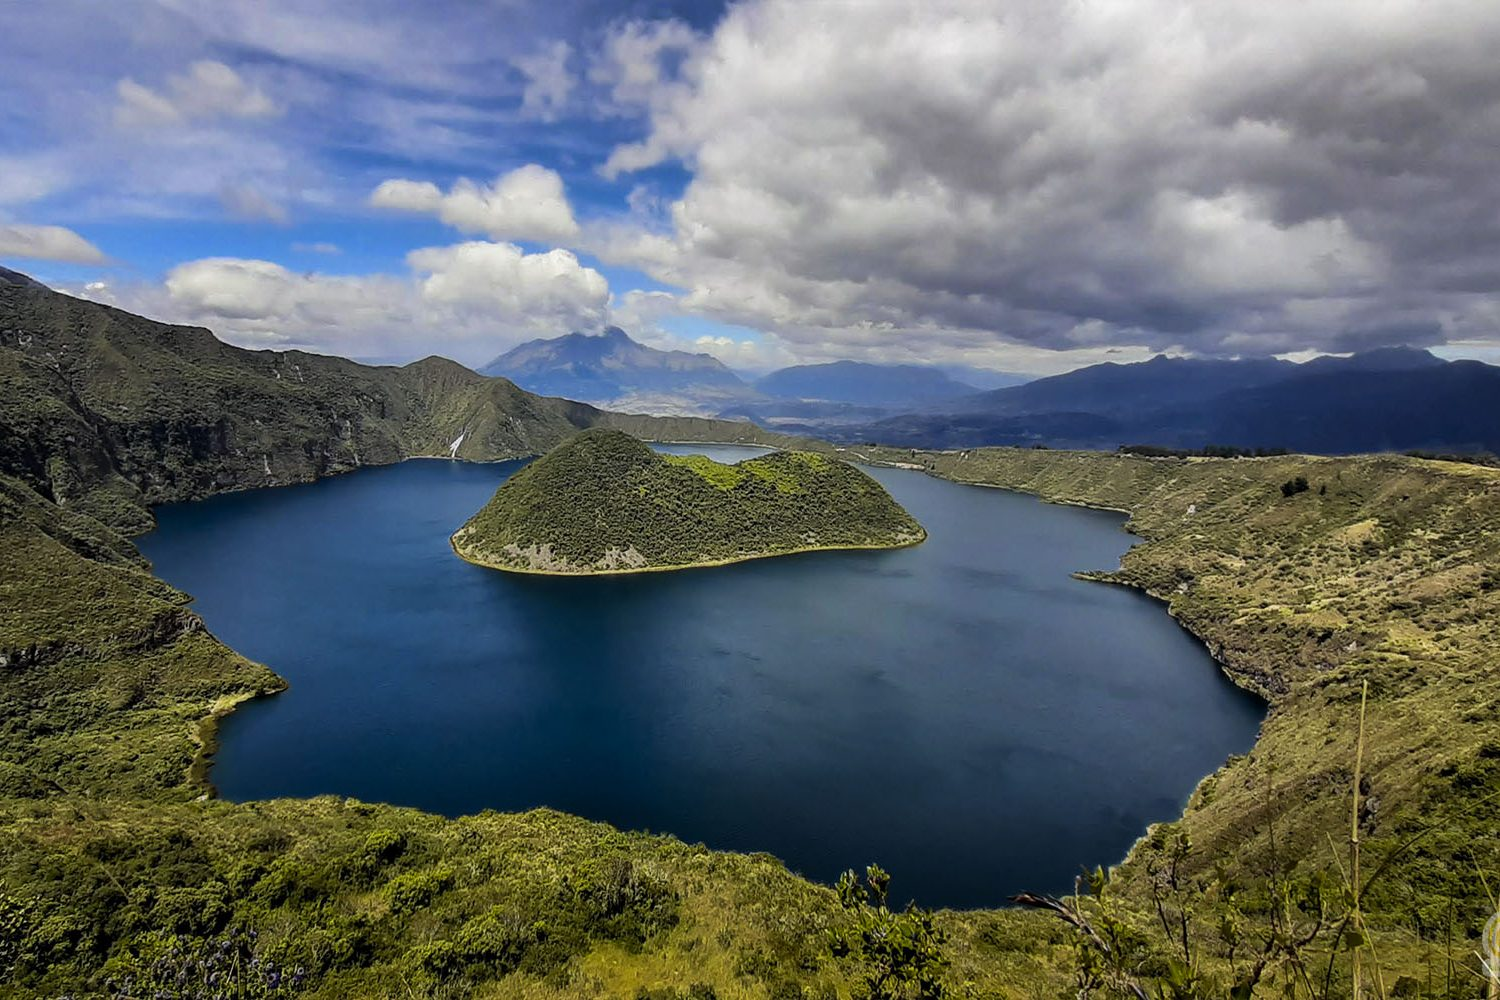 BEST HIKING trail around Cuicocha Lake